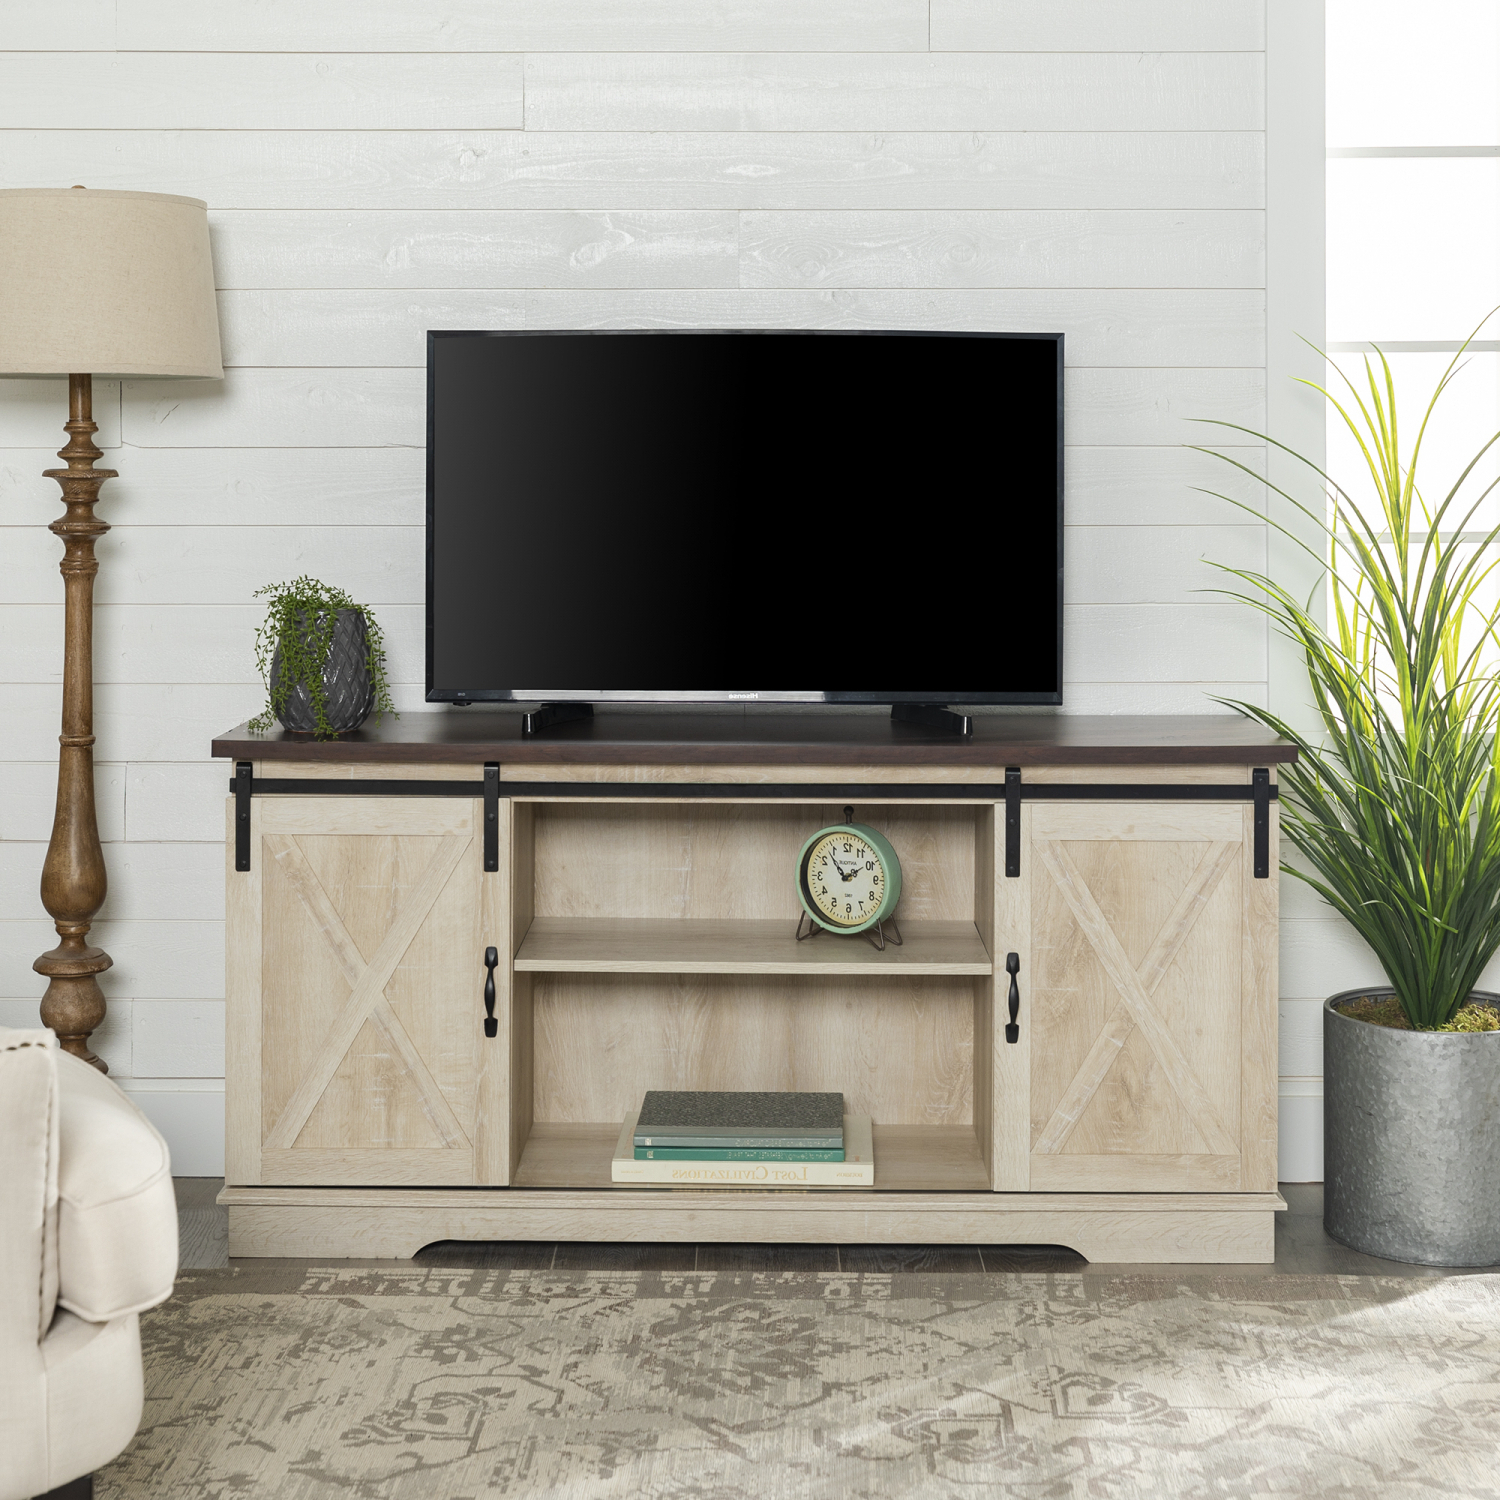 """Modern Farmhouse Style 58"""" Tv Stands With Sliding Barn Door For Well Known Manor Park Barn Door Tv Stand For Tvs Up To 65 In (View 8 of 10)"""